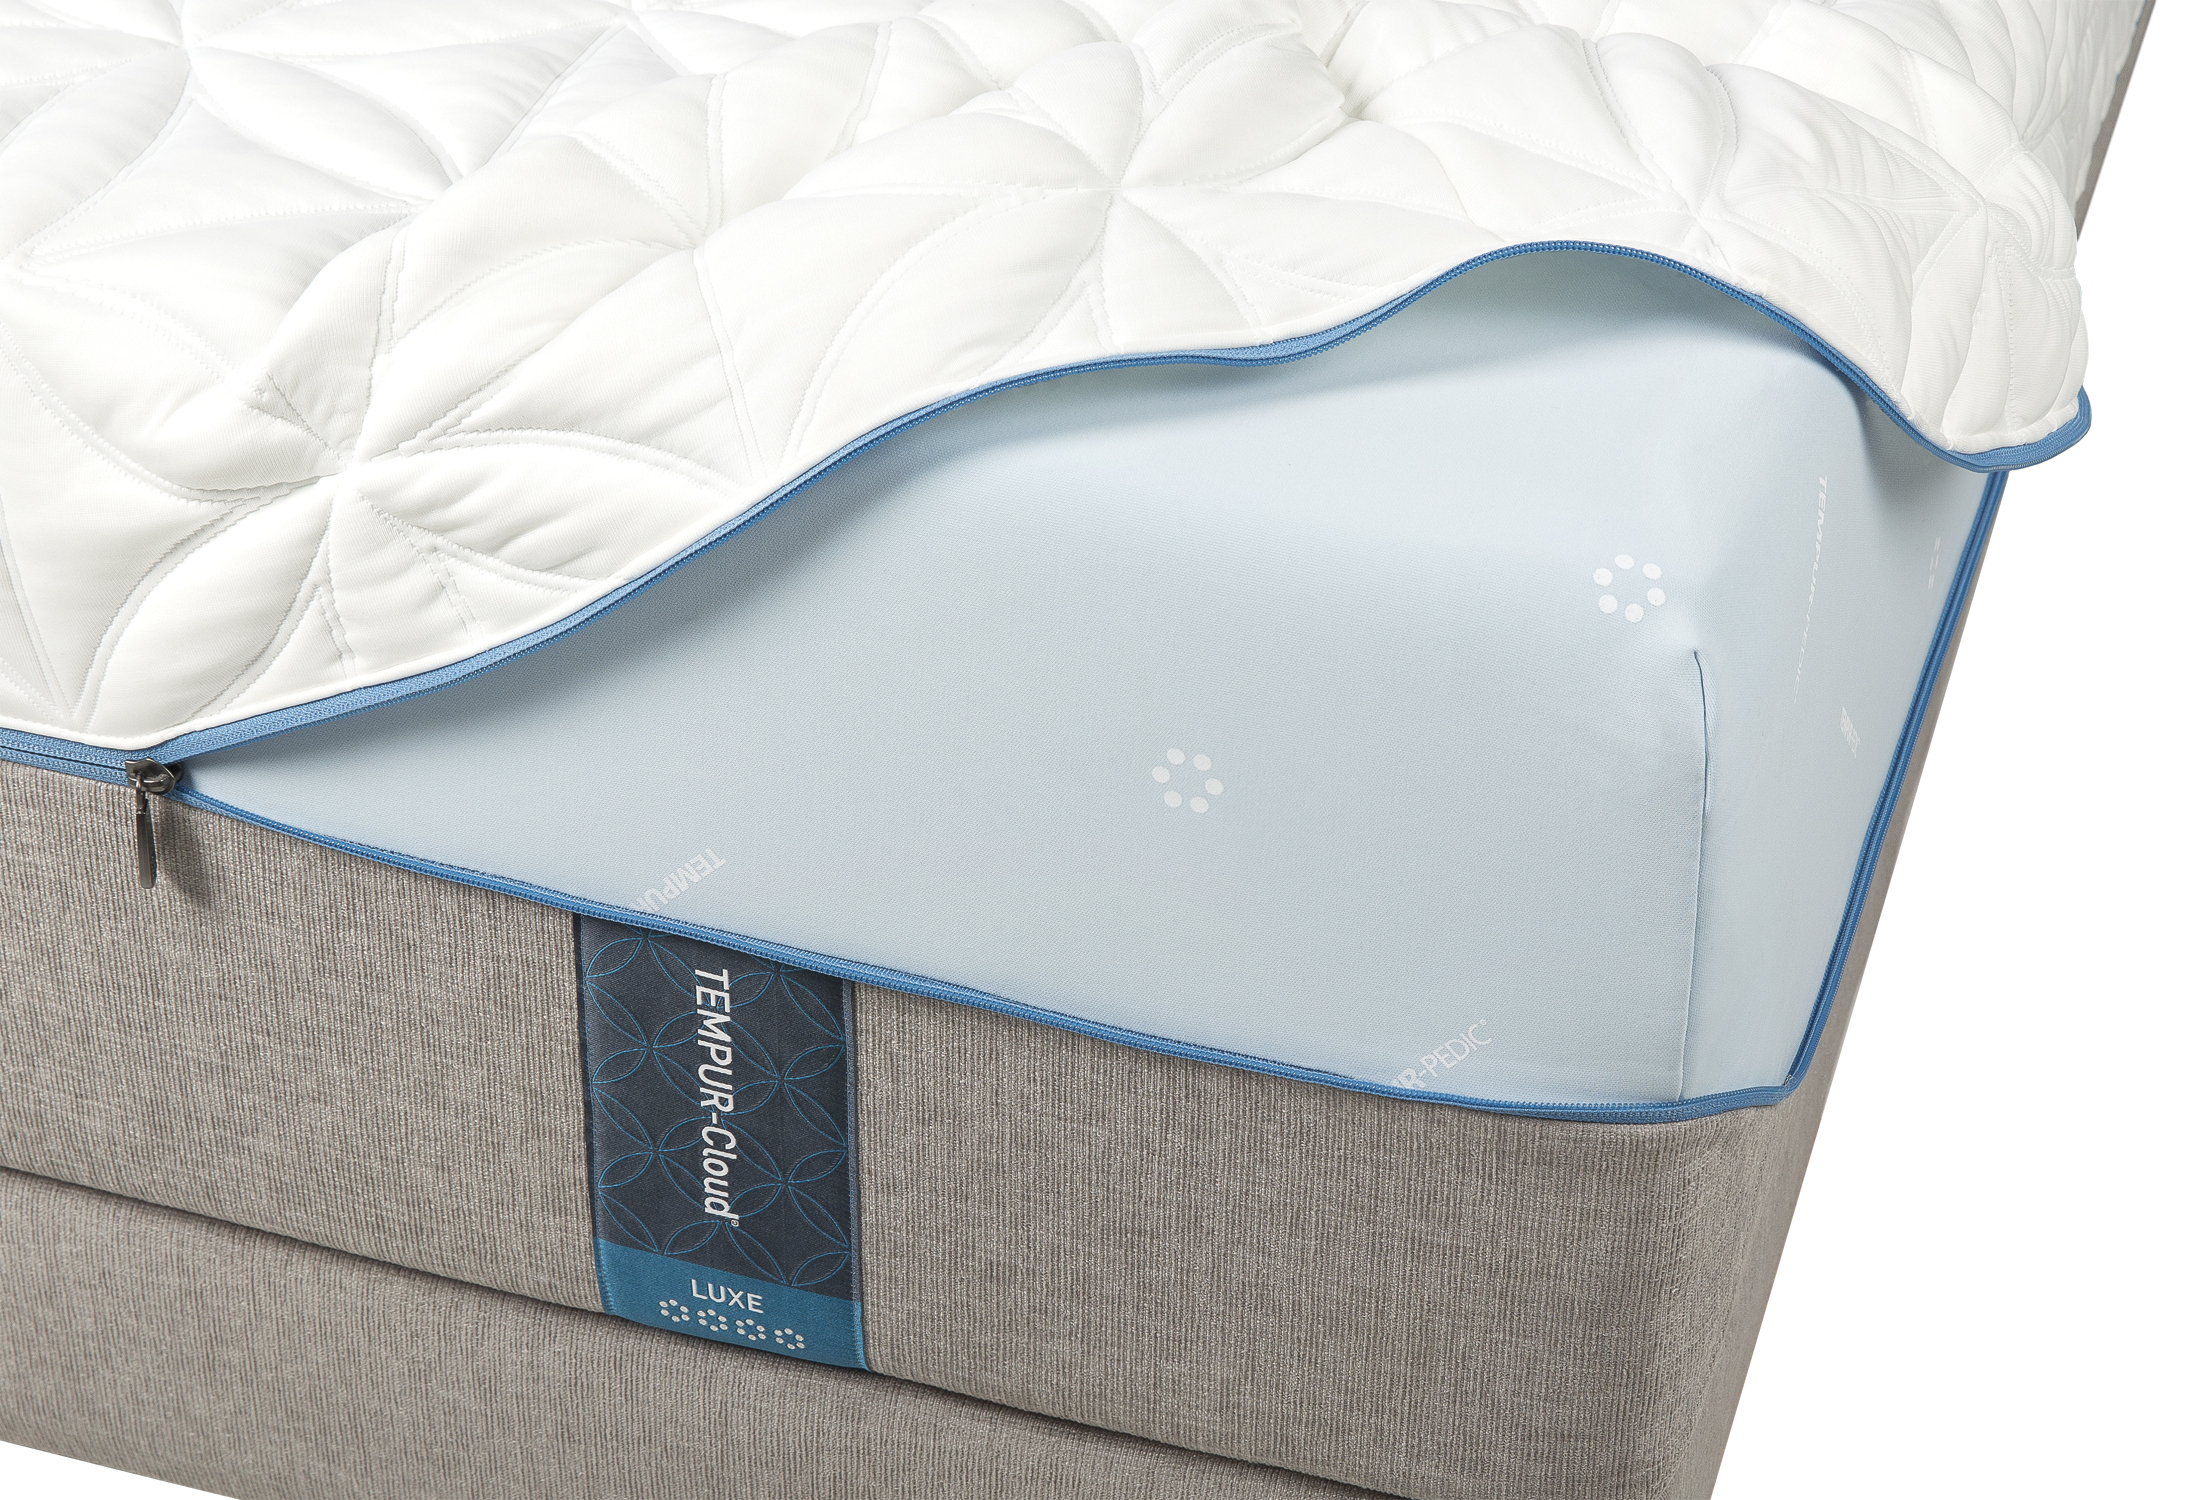 pricestempurpedic queentempurpedic tempurpedic mattress twin lovely lovelympurpedic king images on conceptmper sealy of size concept prices best queen mattresssealy temper tempur pedic price full pricing